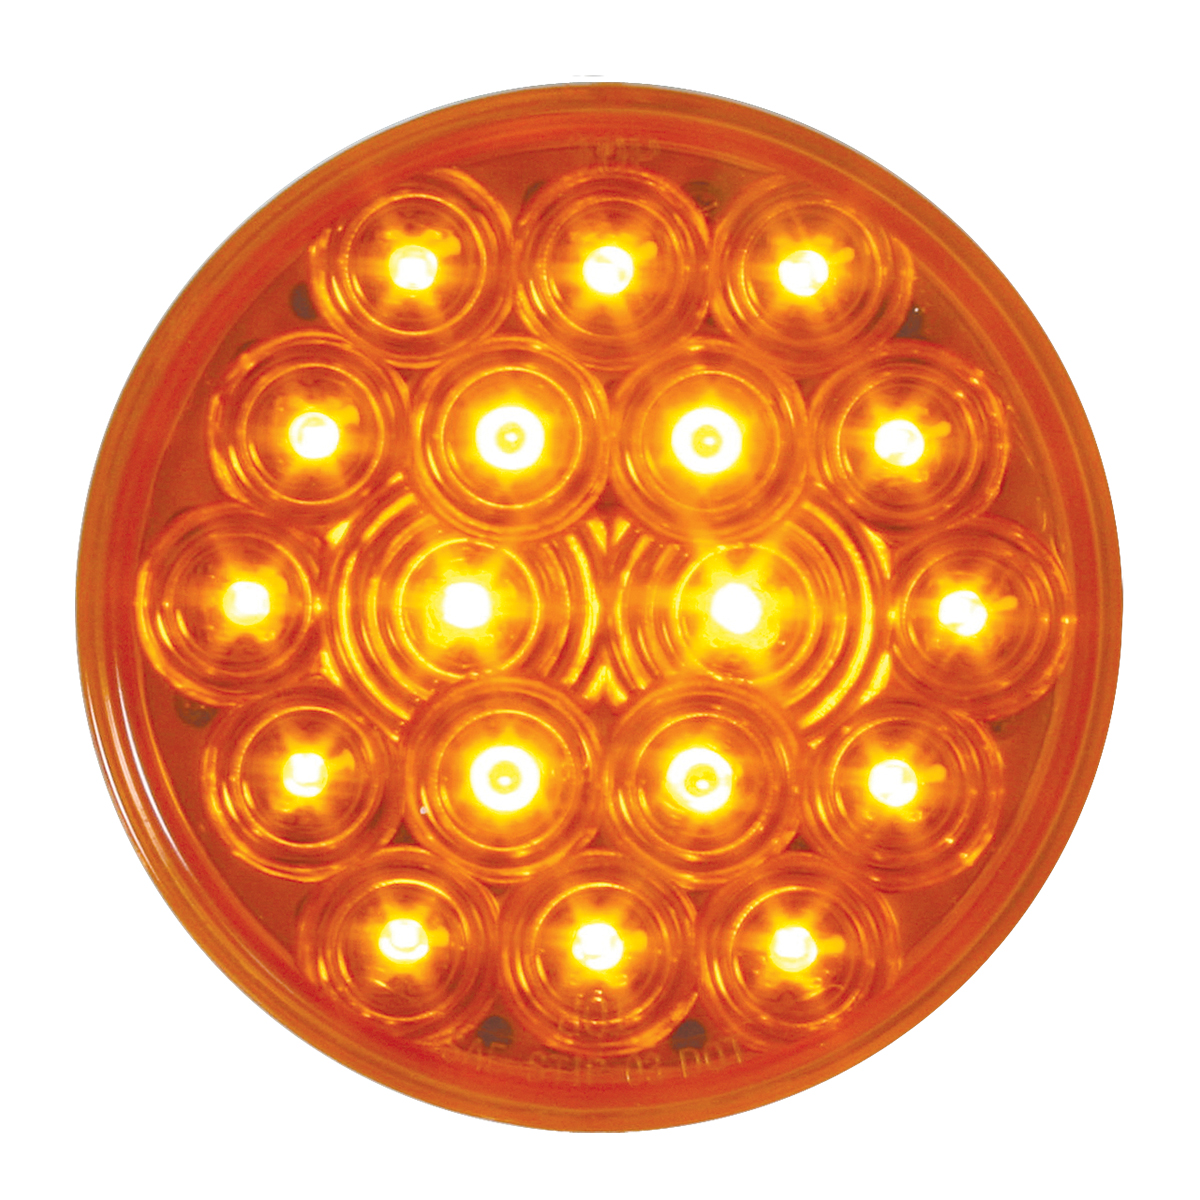 "75070 24V 4"" Round Fleet LED Light"